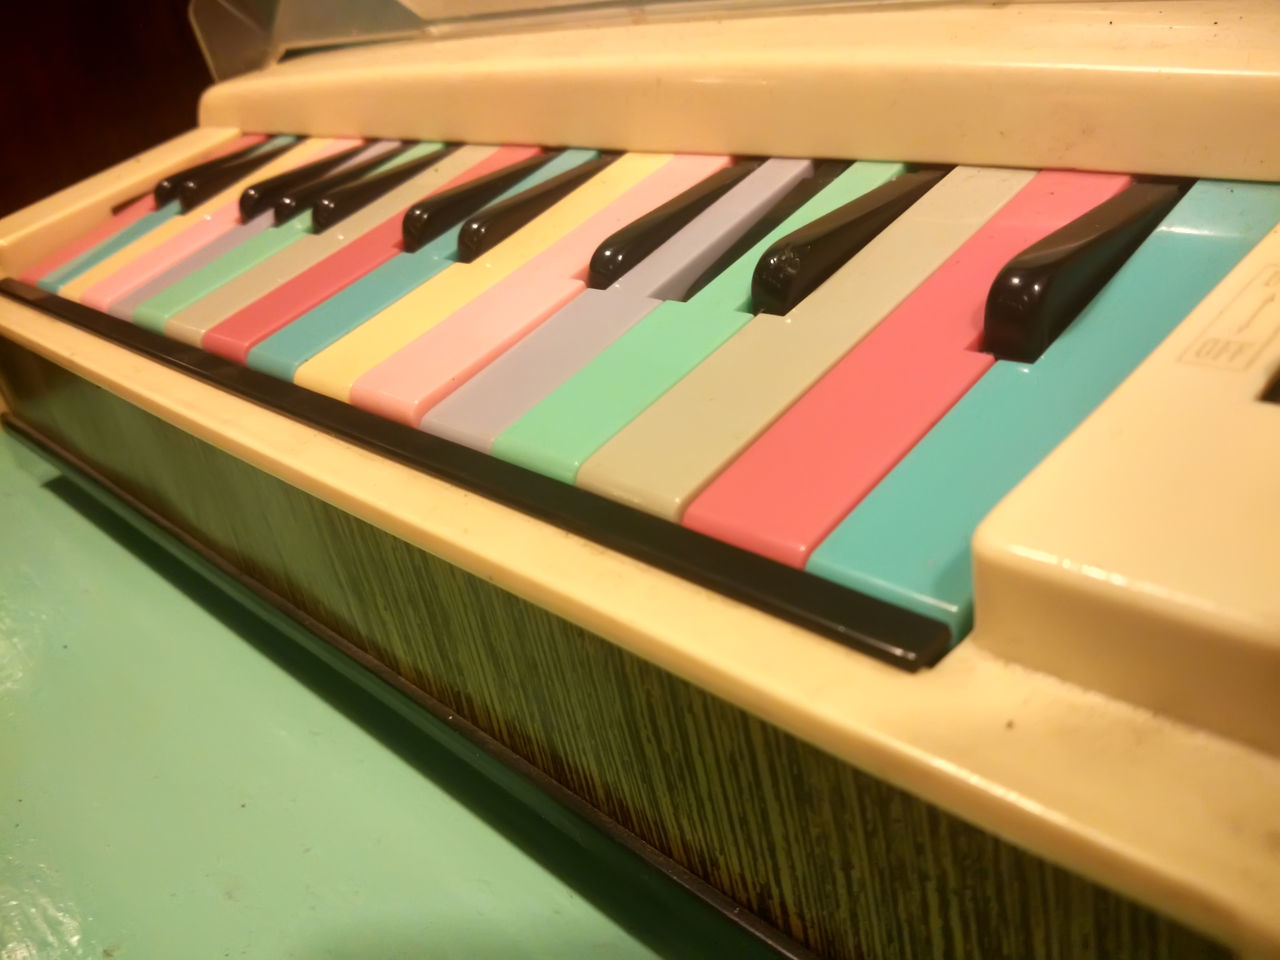 Keyboard toy instrument Close-up Fun Indoors  Instruments Multi Colored Multicolors  Music Musical Instrument No People Piano Plastic Toy Variation